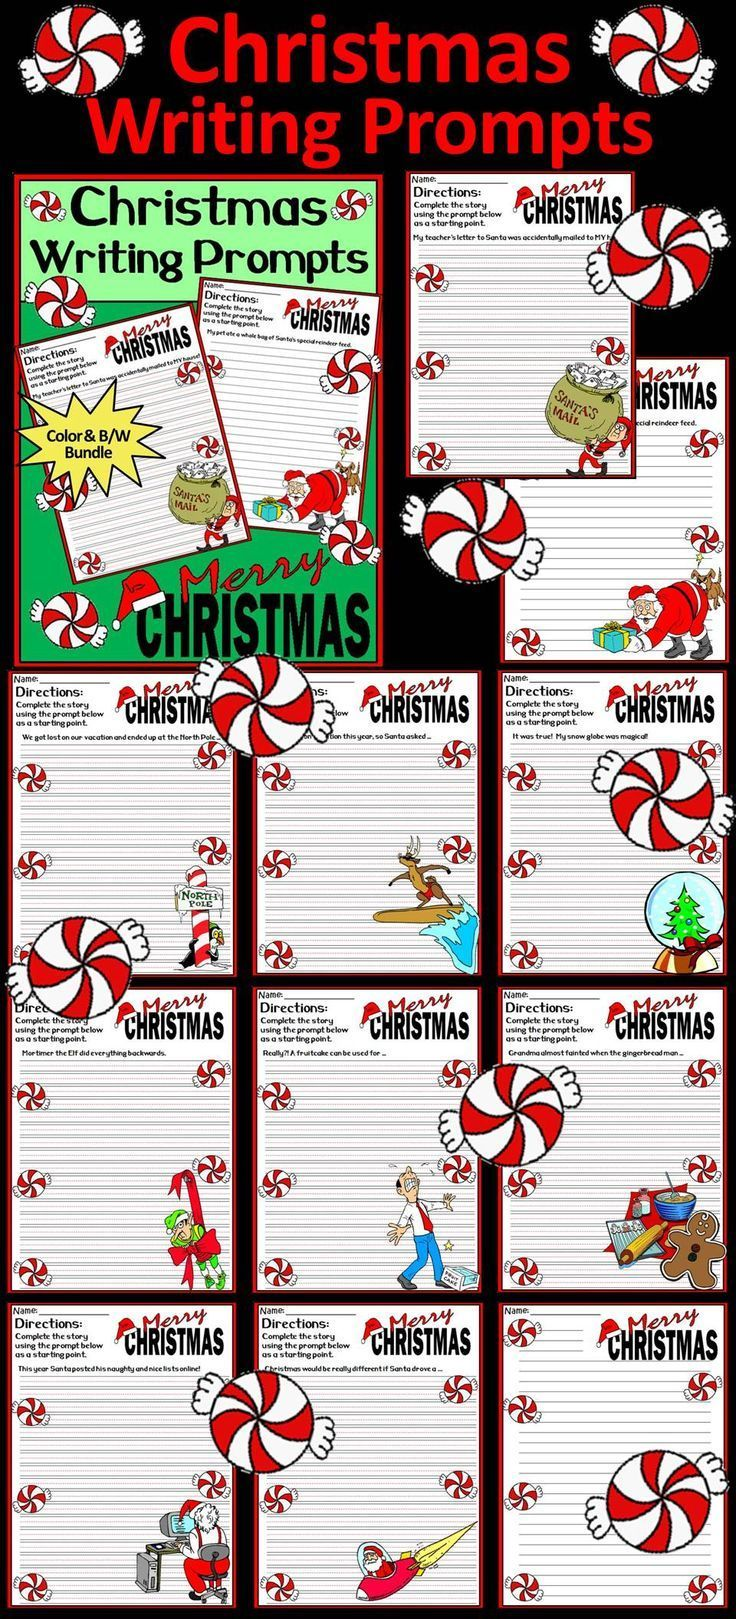 Christmas Writing Prompts Activity Packet:  Christmas Writing Prompts packet contains ten different story starters all with a fun holiday theme.   Christmas Writing Prompts Includes: * Ten Christmas Writing Prompts on both Primary Lined Paper & Regular Li